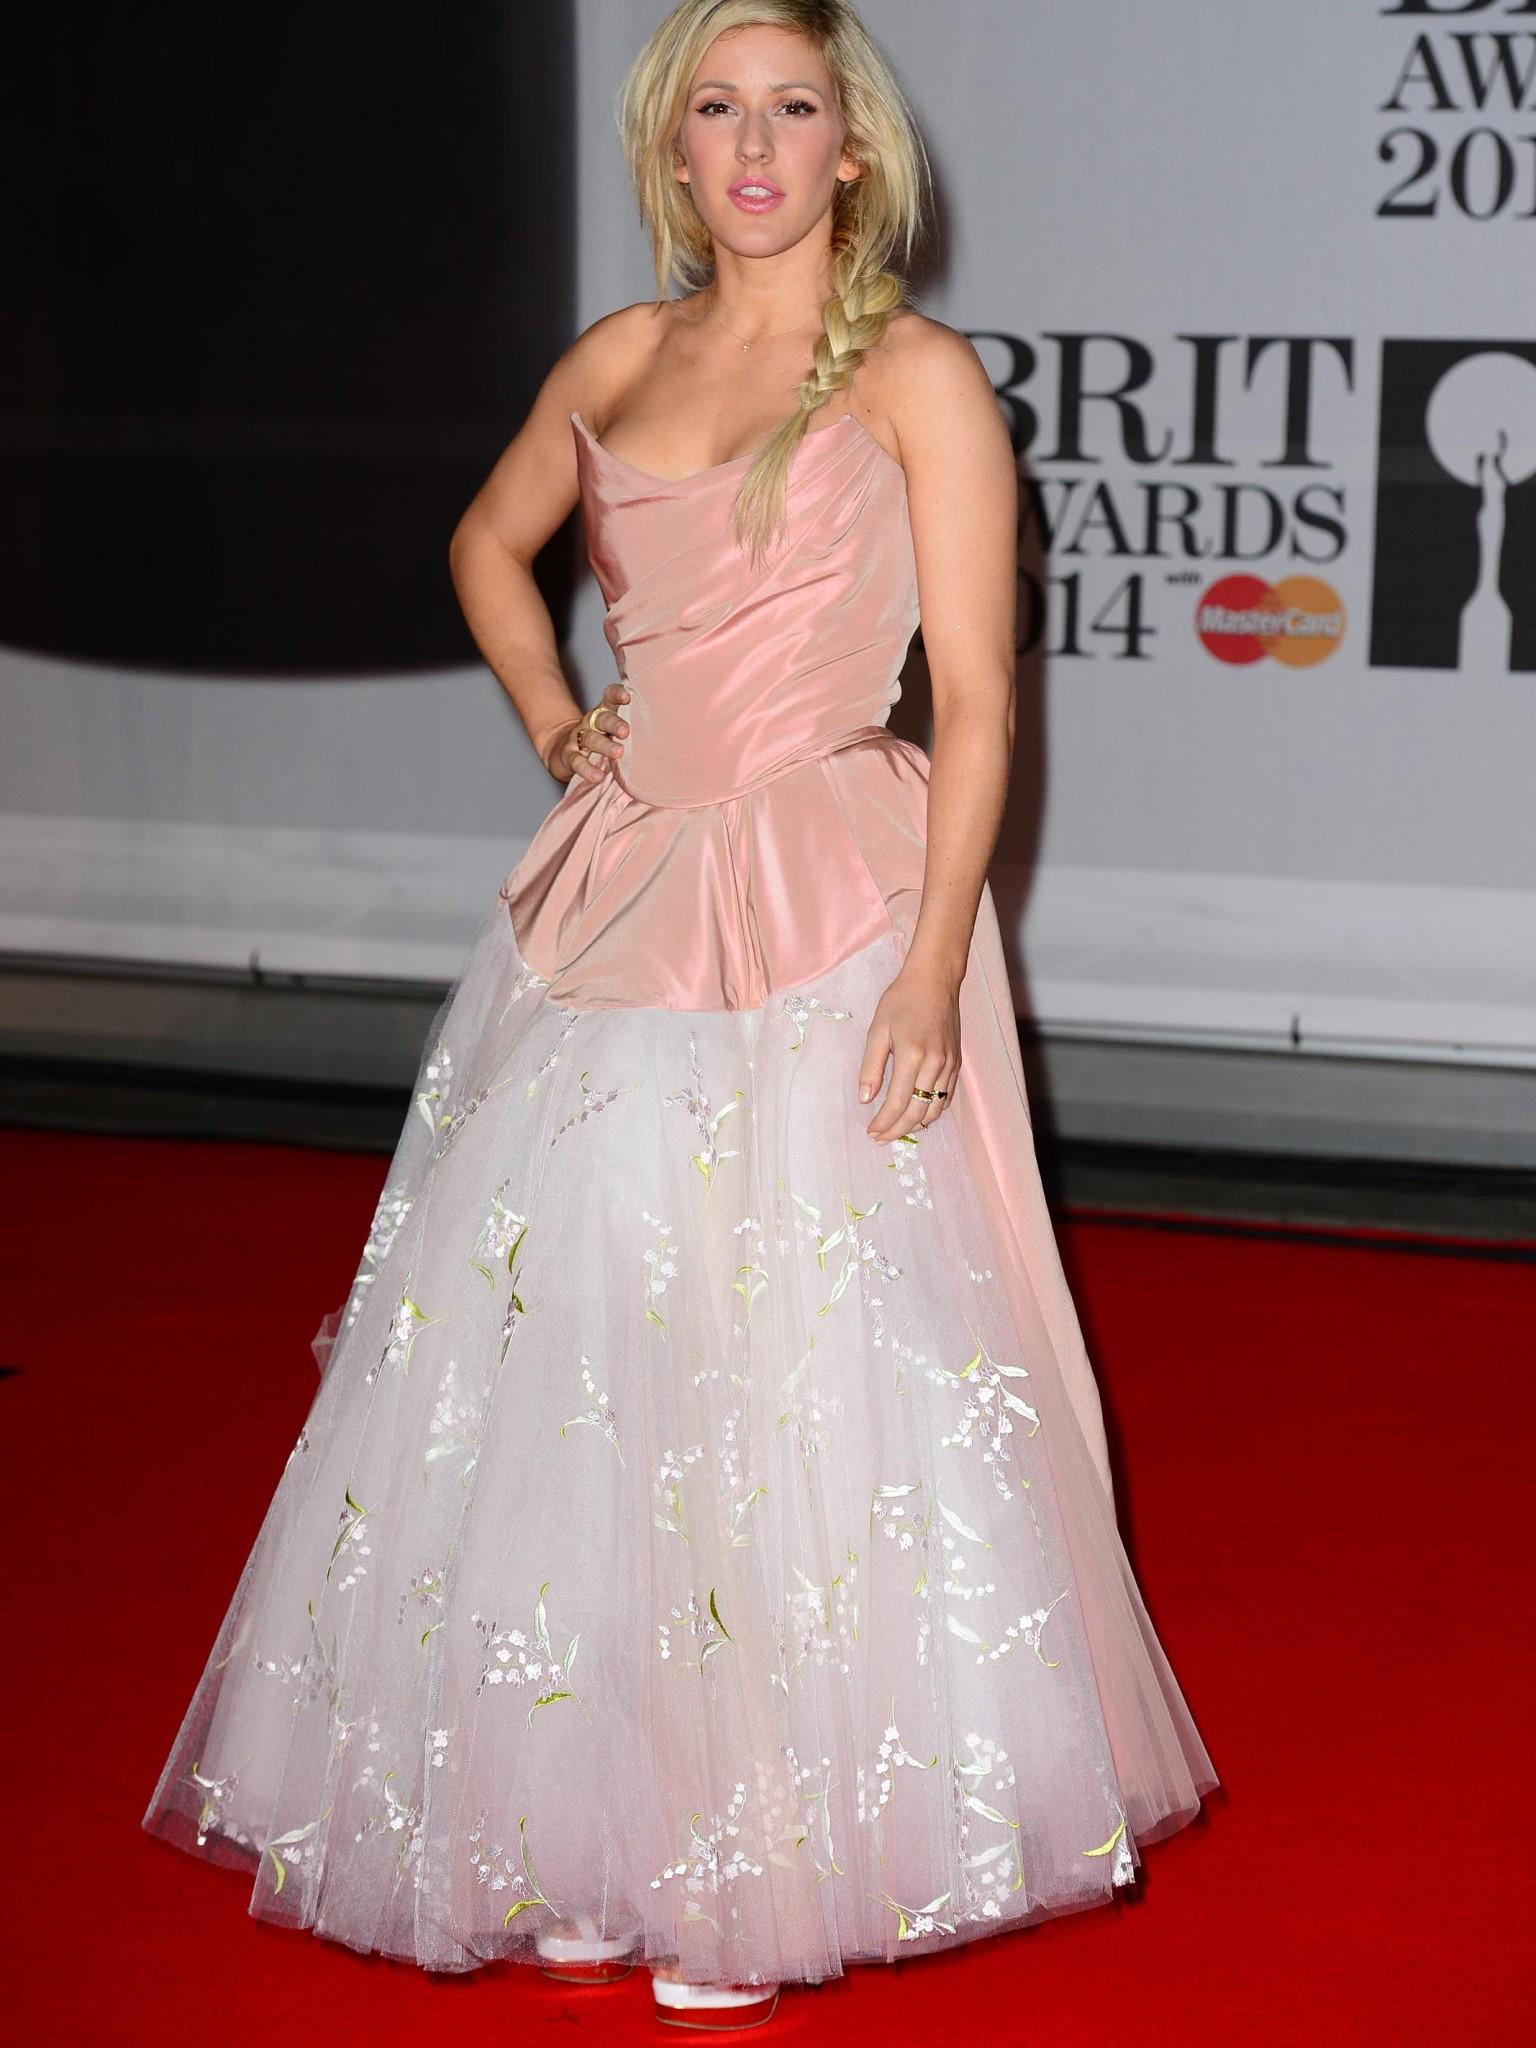 BRIT Awards-Weggucker